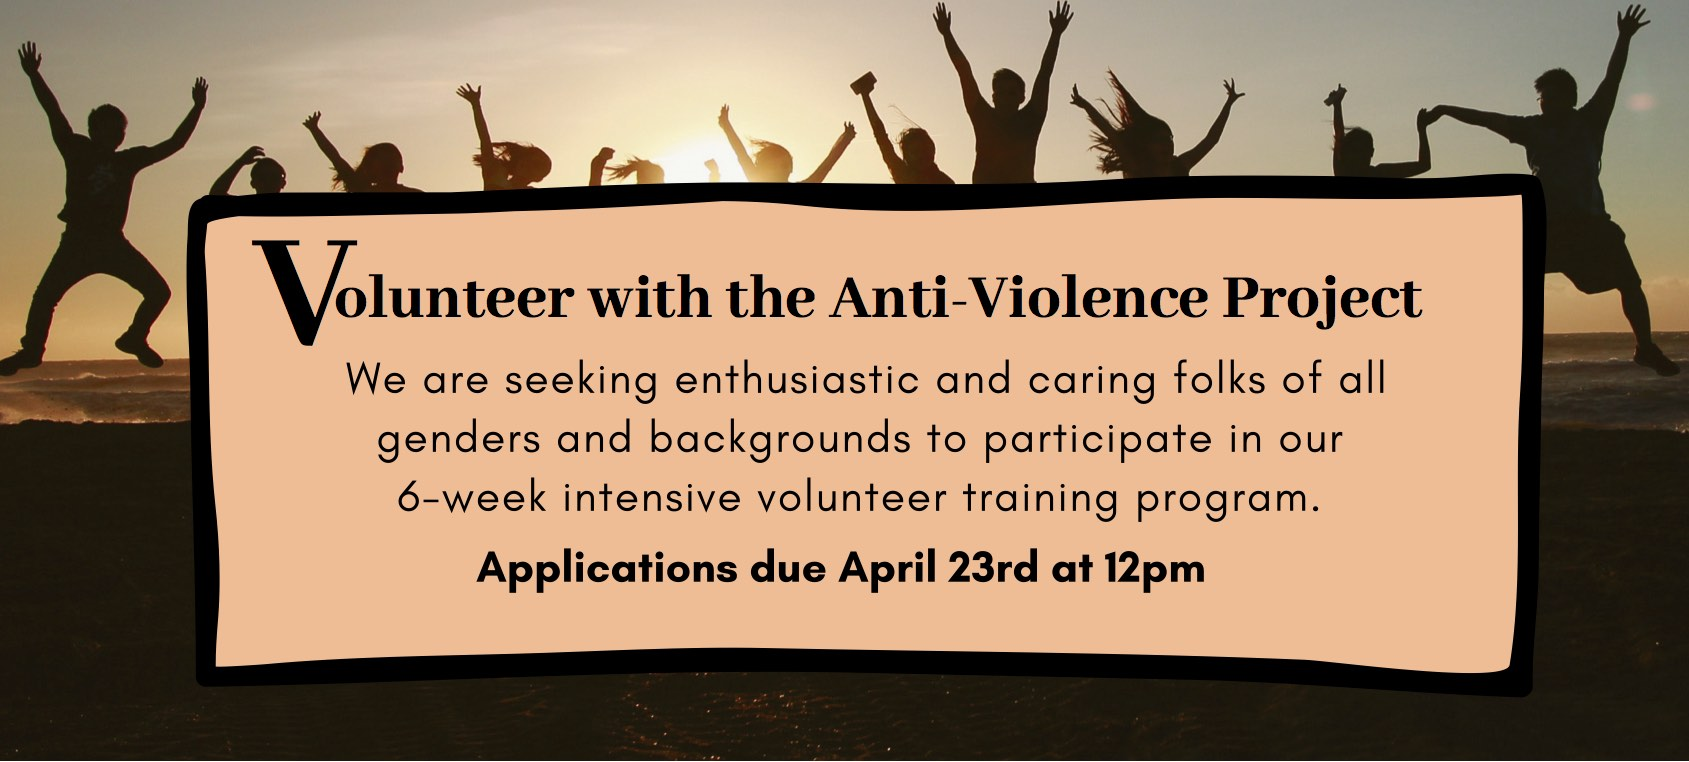 "Image of people celebrating at a beach, with the text ""Volunteer at the Anti-Violence Project: We are seeking enthusiastic and caring folks of all genders and backgrounds to participate in our 6-week intensive volunteer training program. Applications due April 22nd at 12pm."""